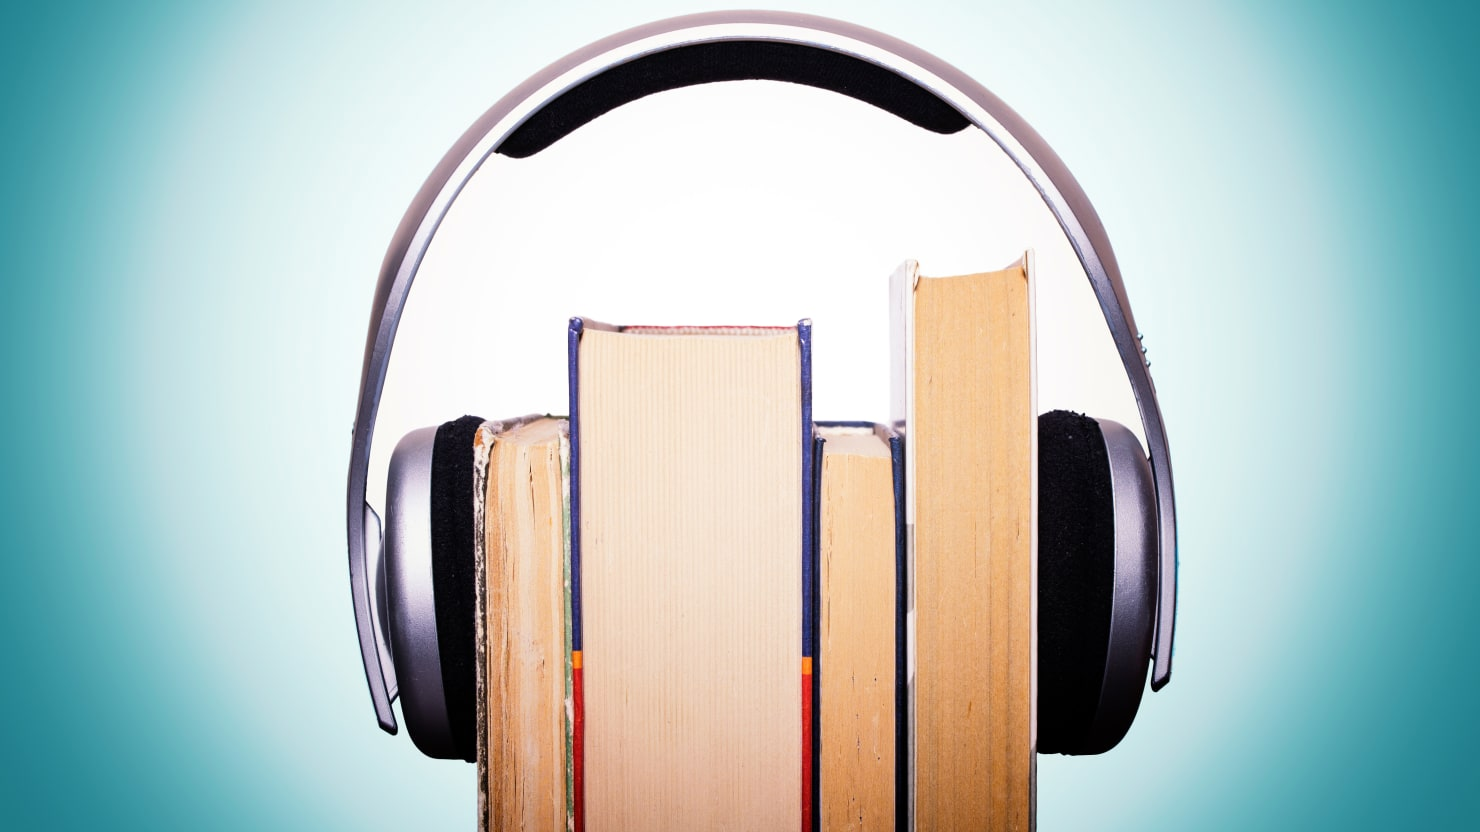 How Audiobooks Are Becoming an Art Form Unto Themselves